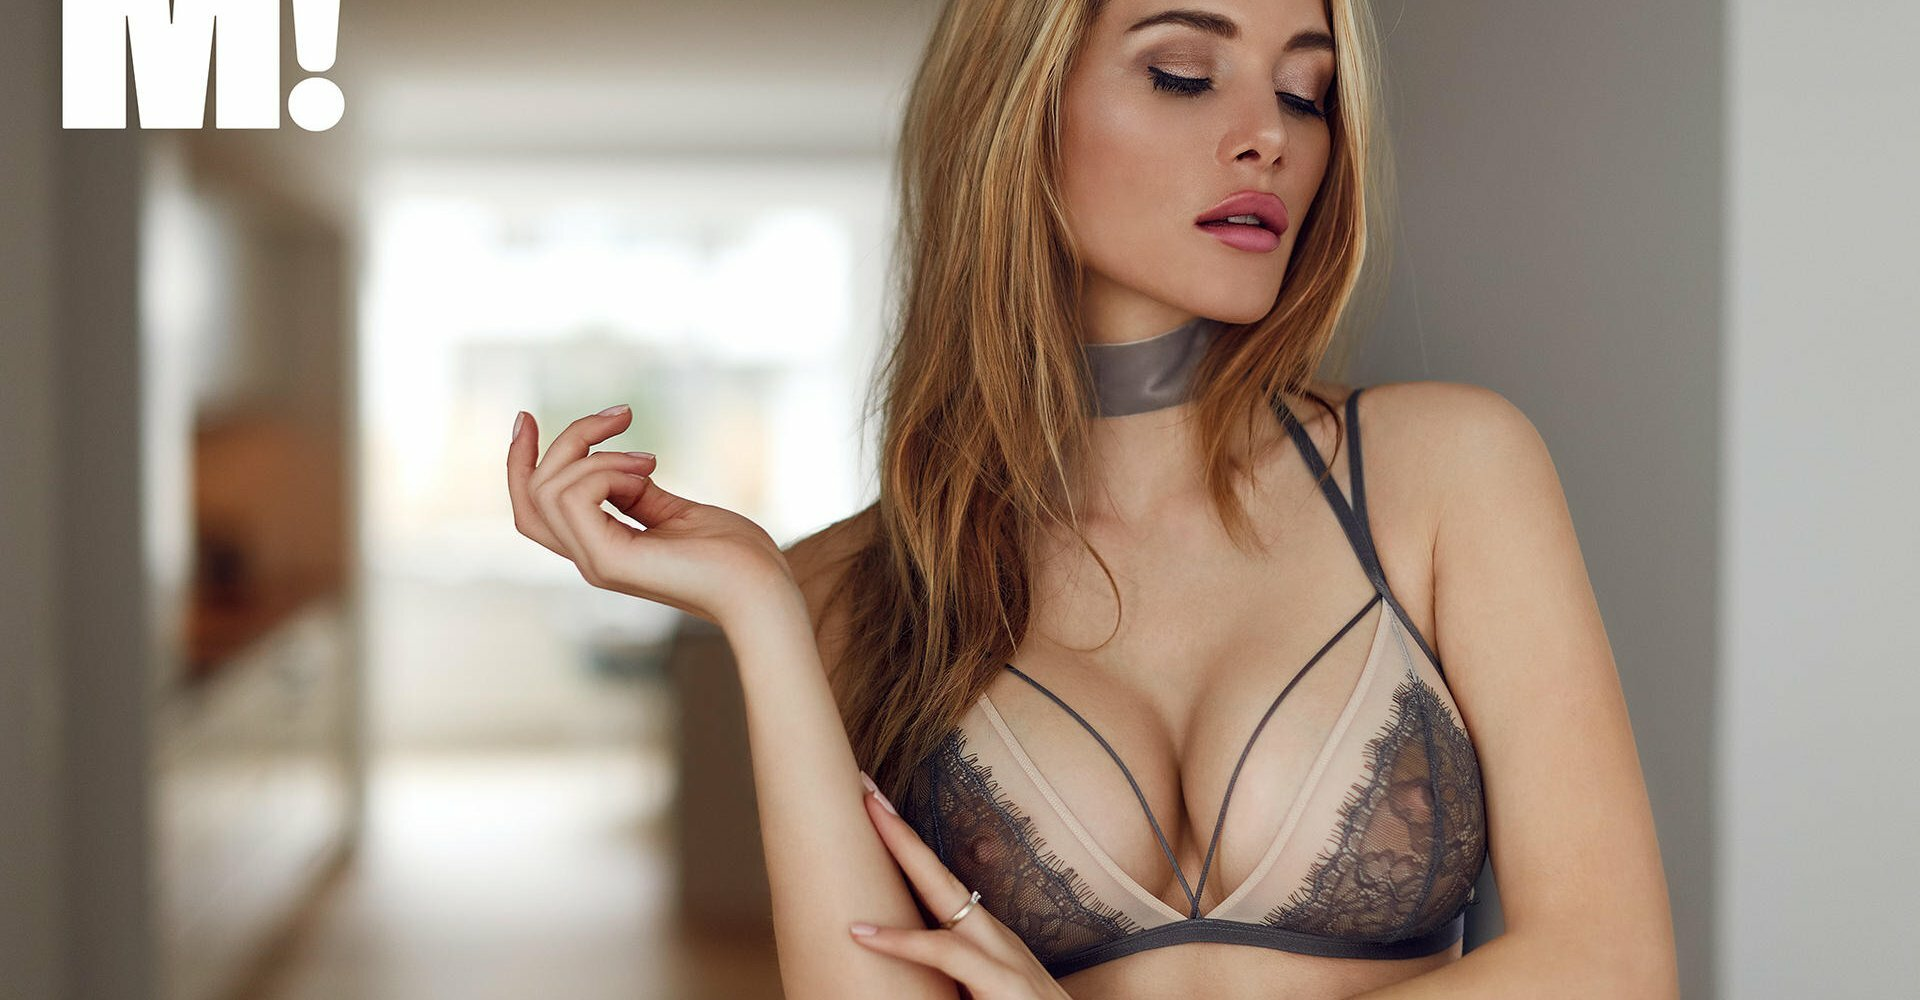 Pictures Anna Opsal nudes (31 photo), Tits, Cleavage, Instagram, lingerie 2018